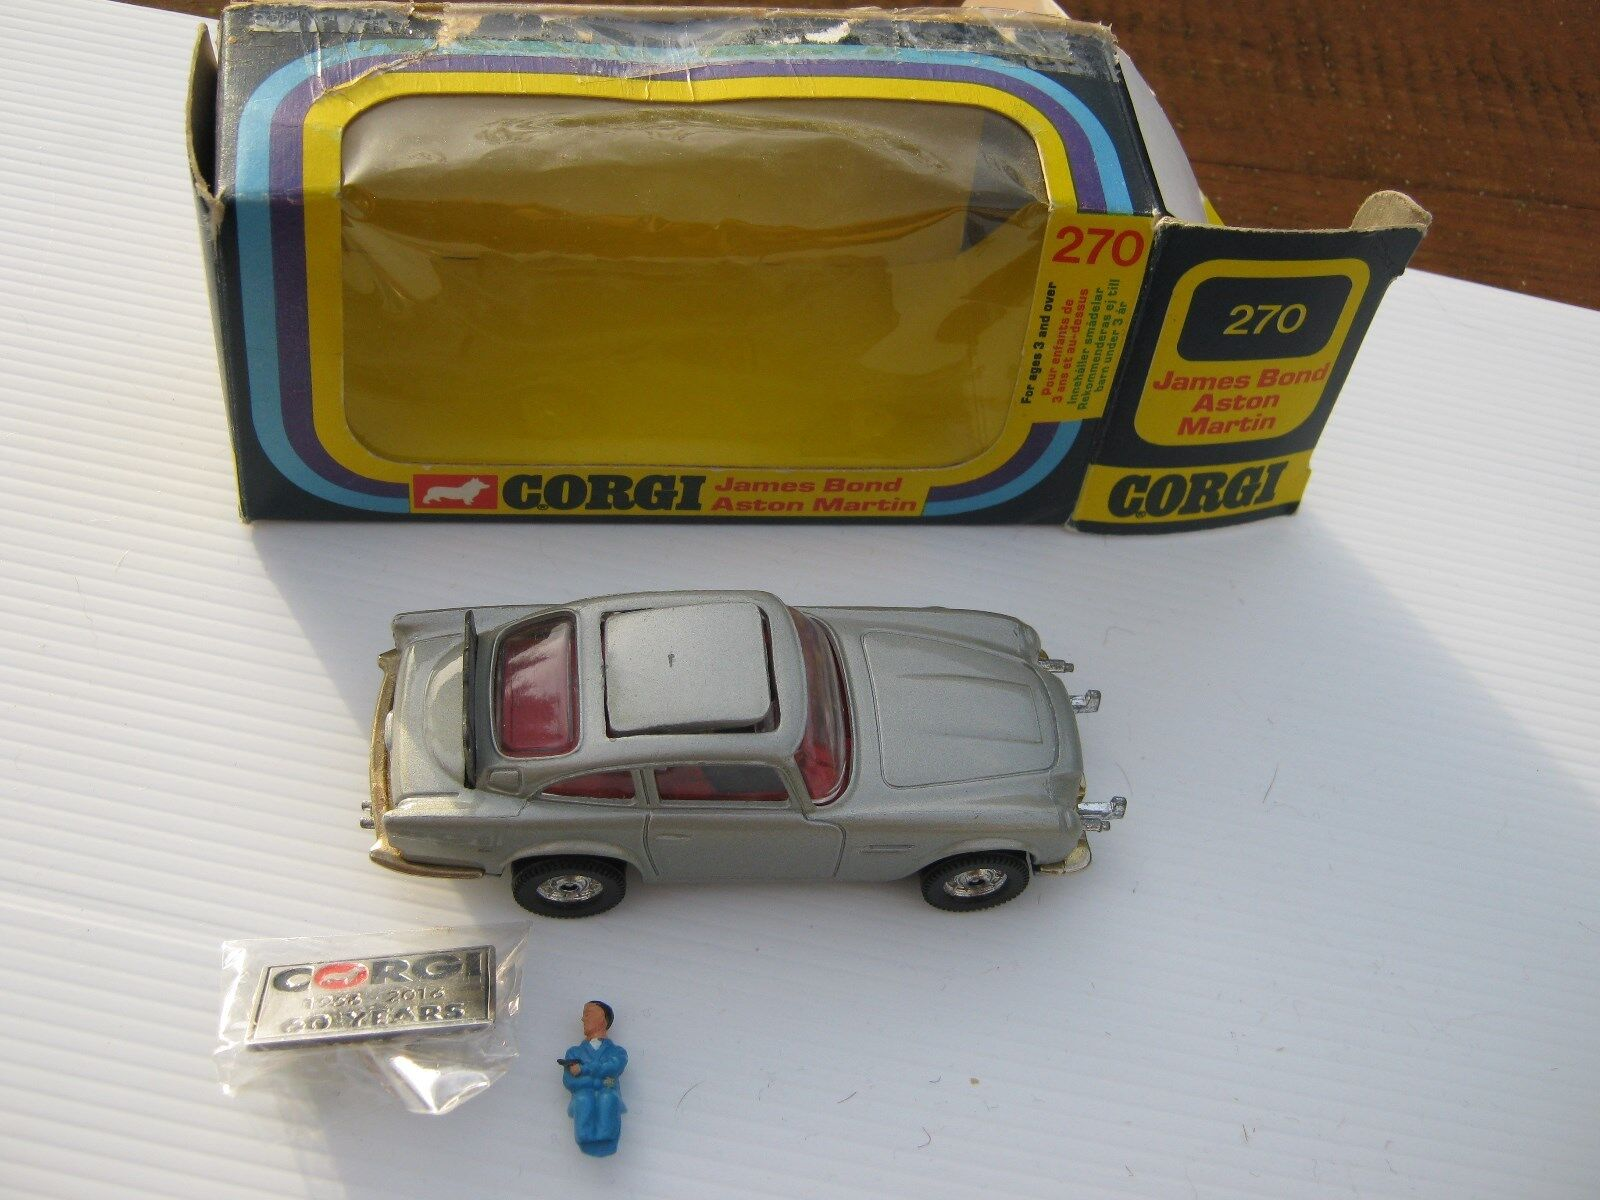 CORGI 270 originale Aston Whizzwheels auto da 1978, come descritto indossato ORIG BOX